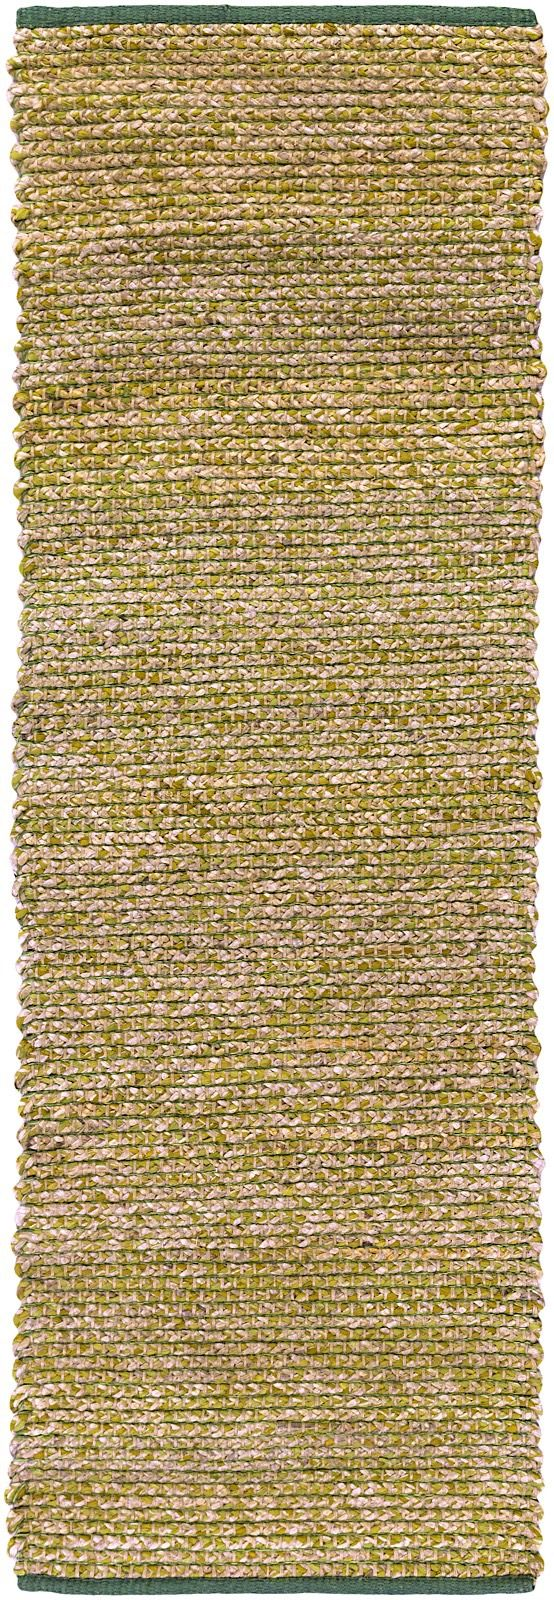 surya hollis natural fiber area rug collection